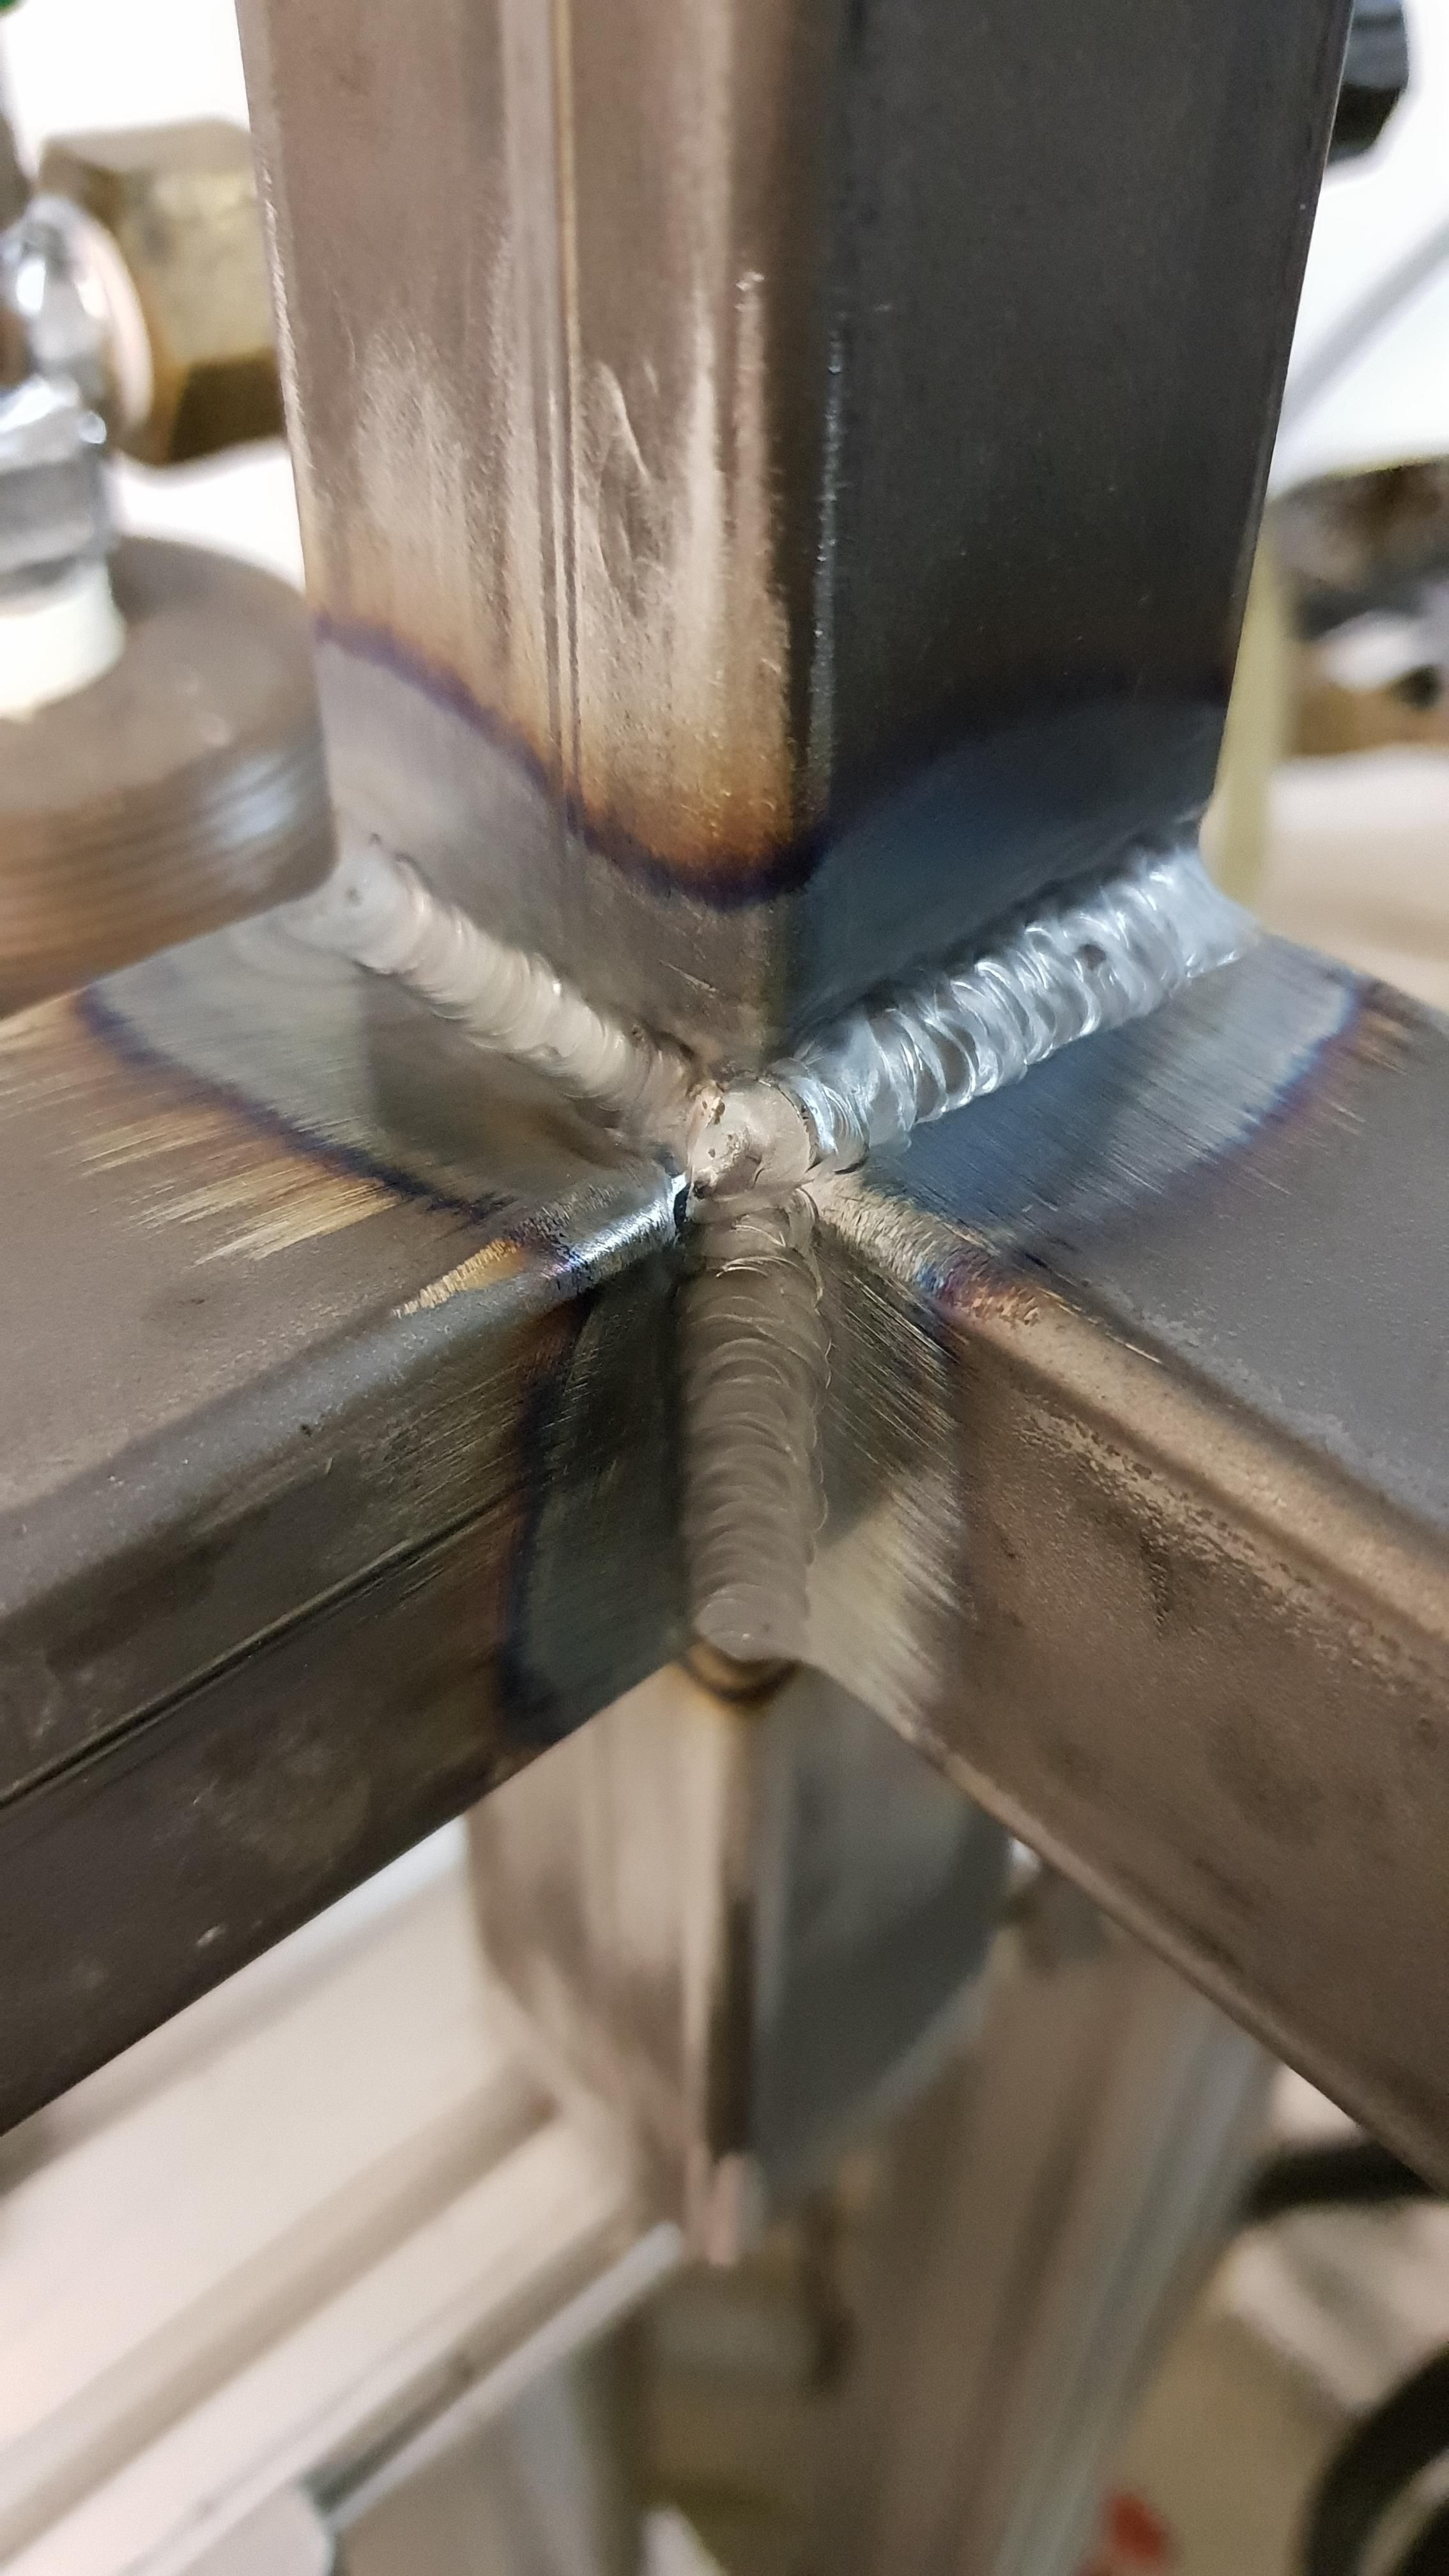 1 Week Into Tig Welding Welding Tig Welding Welding And Fabrication